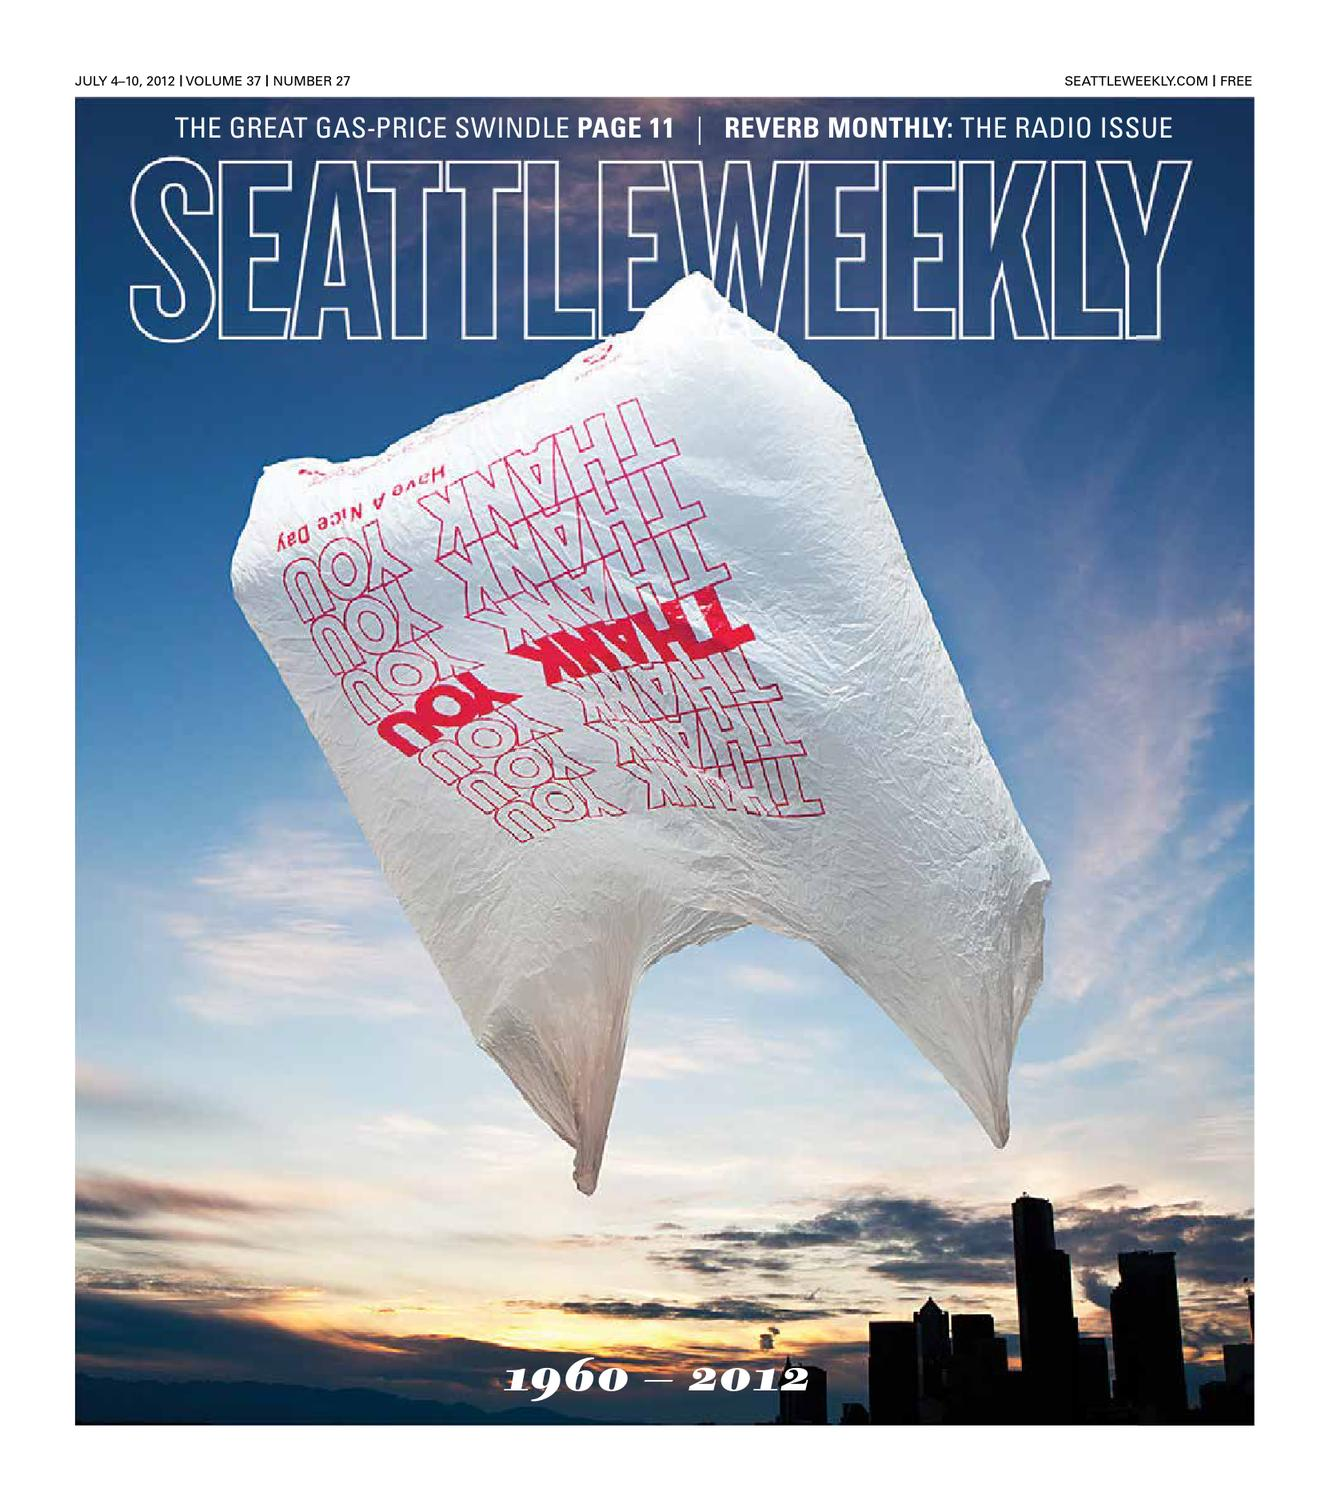 Seattle Weekly, July 04, 2012 by Sound Publishing - issuu